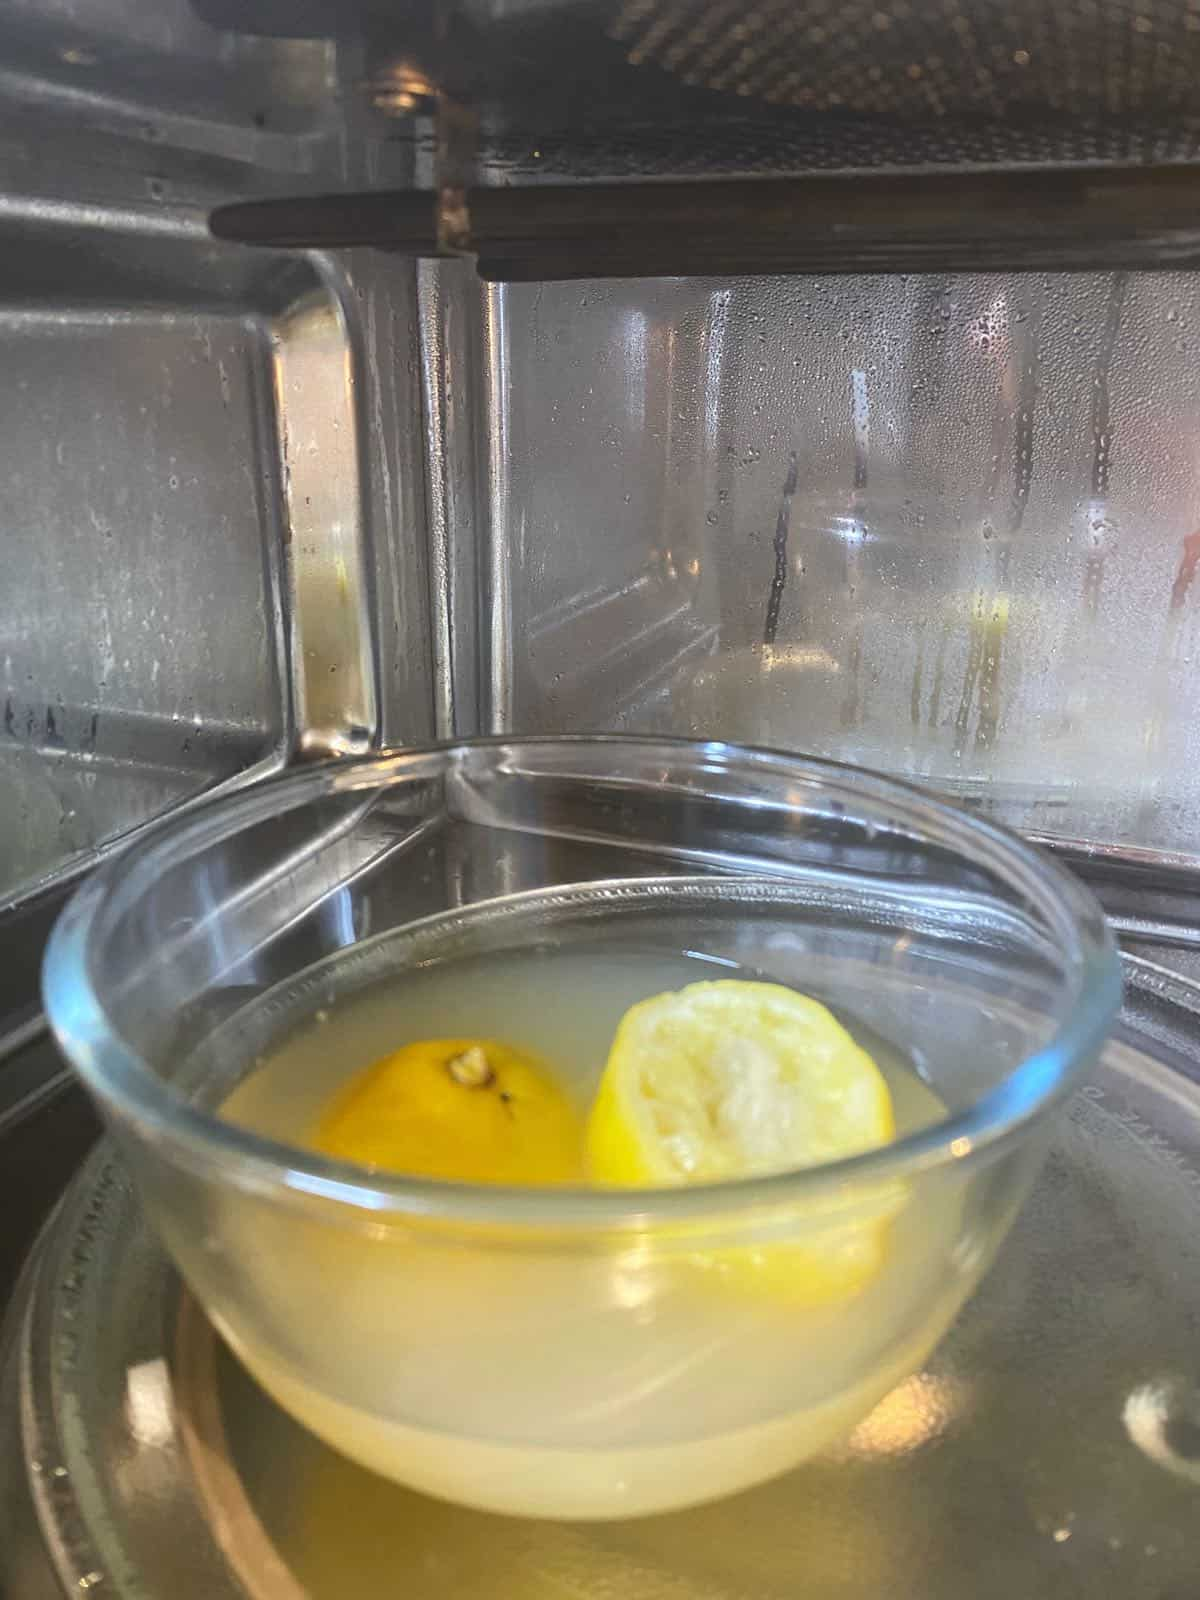 A bowl with water and lemon inside a microwave